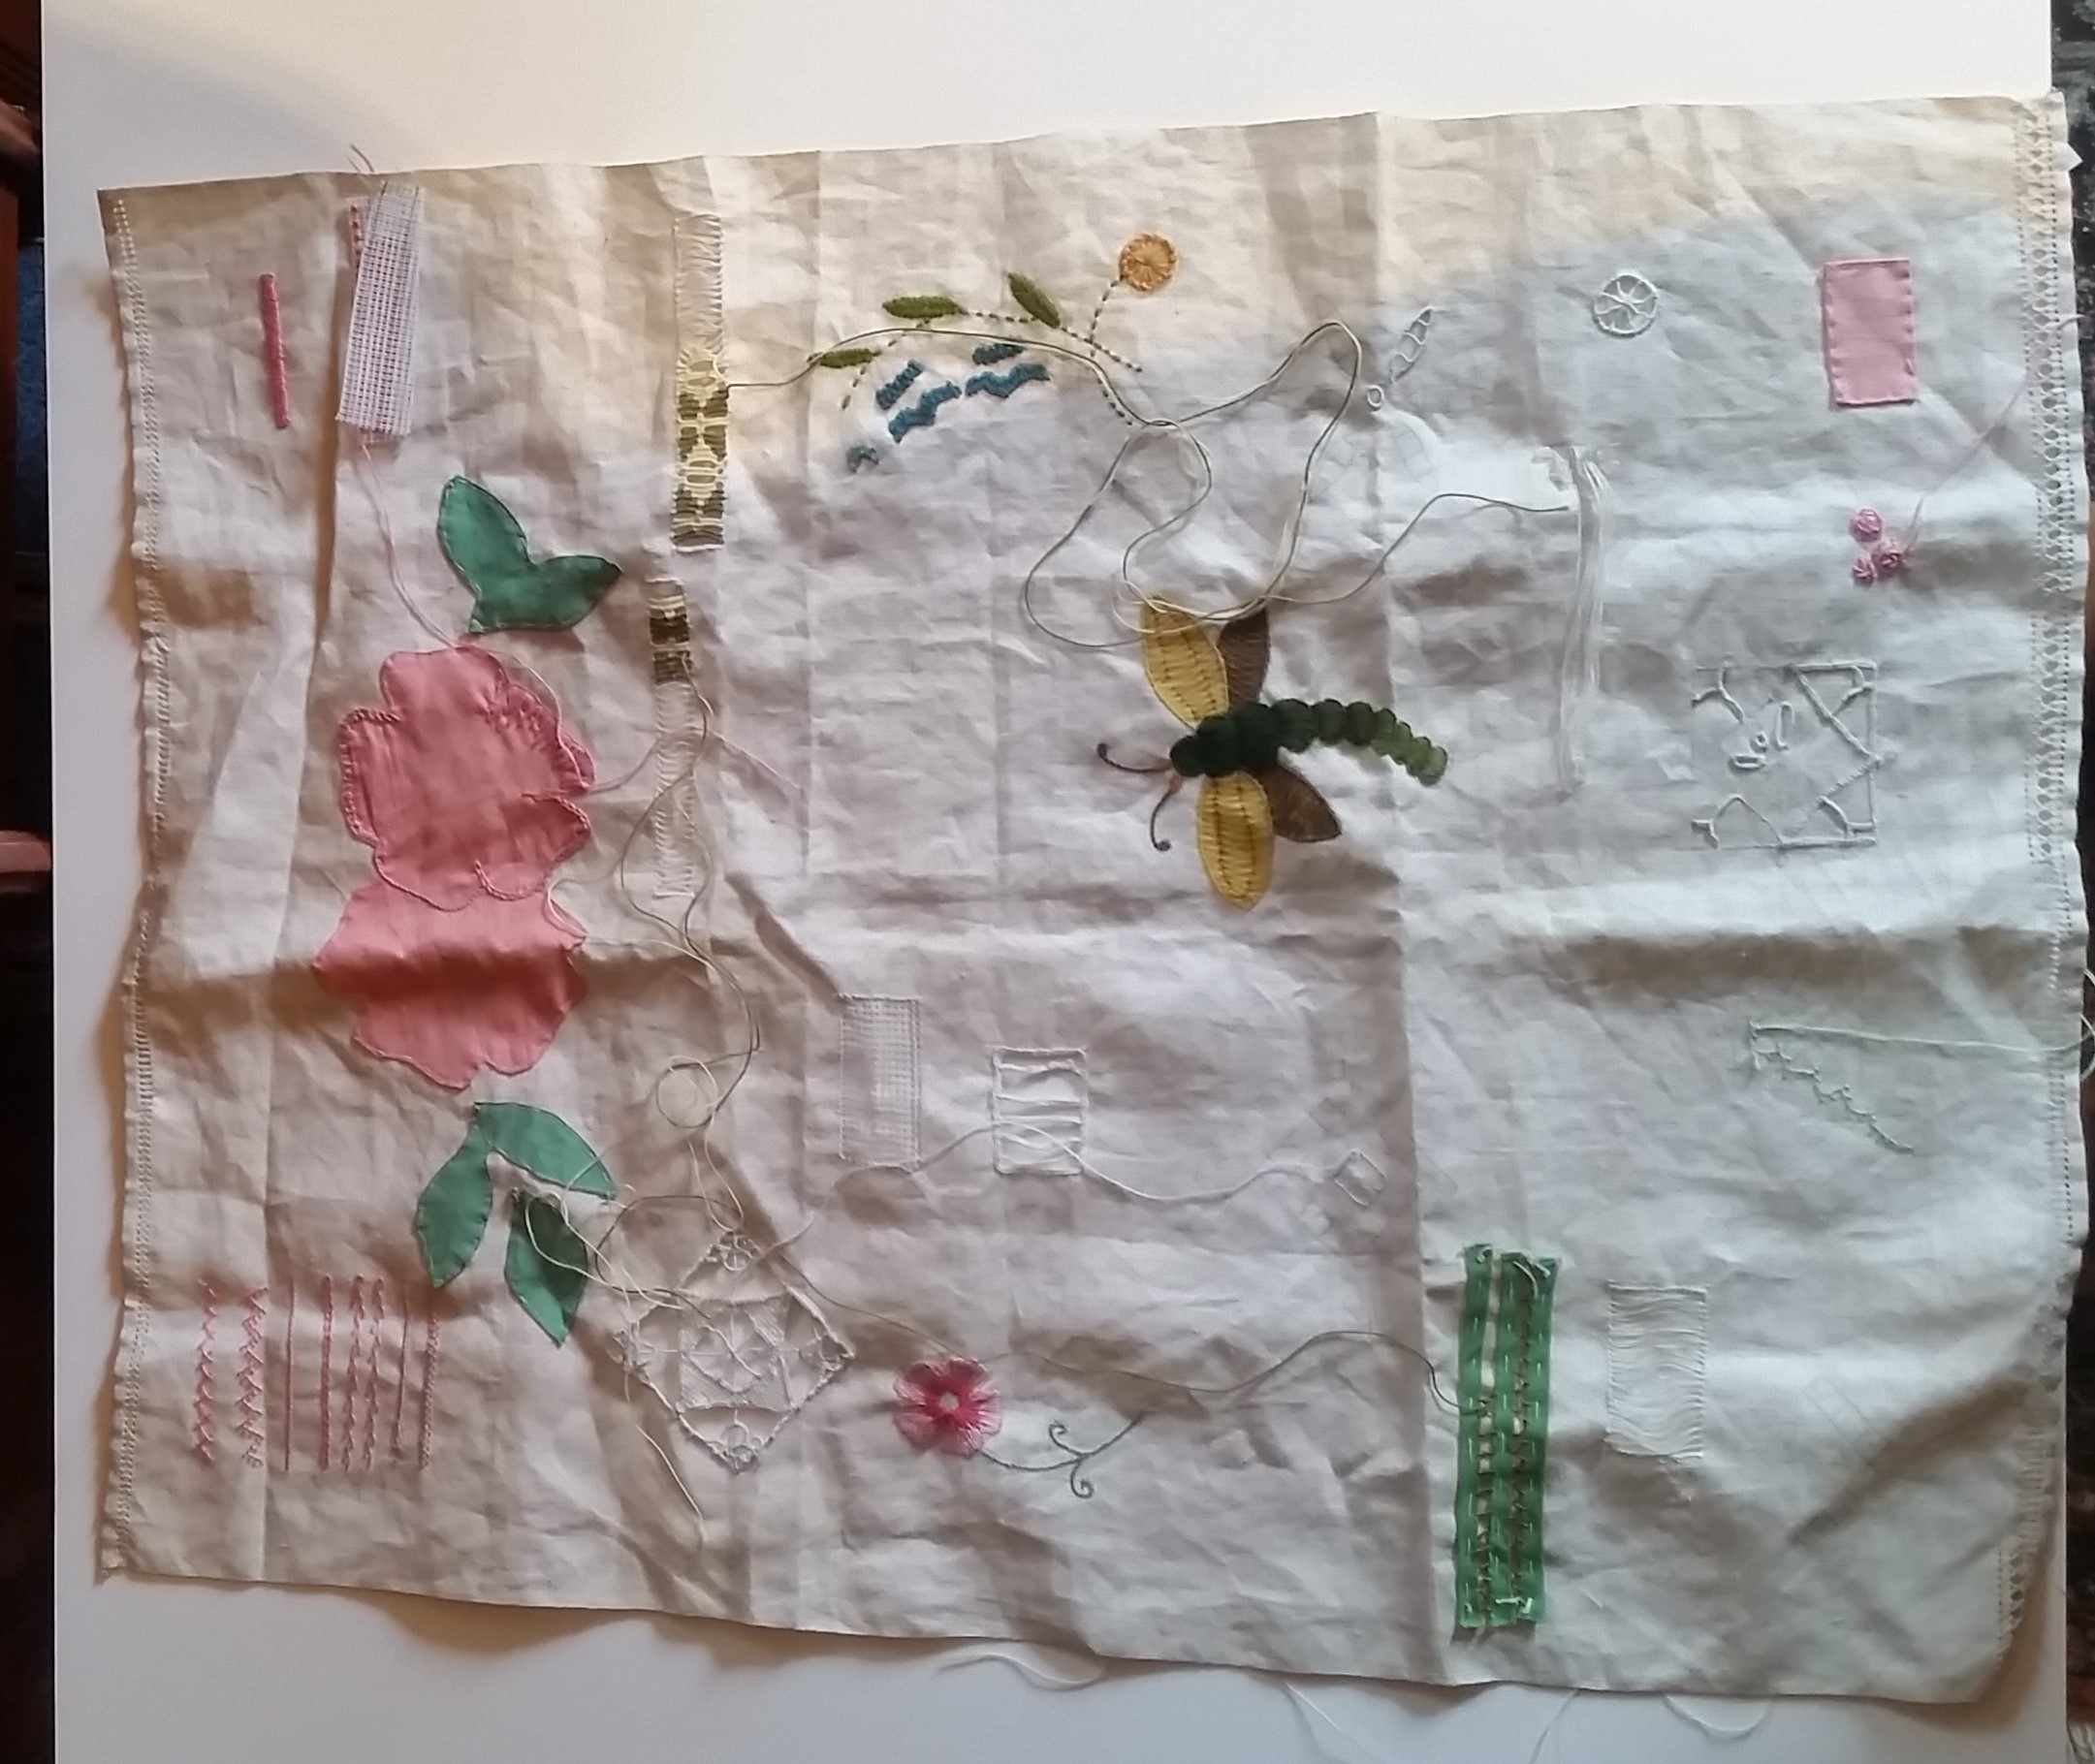 This sampler was found in a sewing basket belonging to Esther Sybilla Hefty, 1883-1963. A sampler was used by young girls or women to practice stitching techniques, usually before she was married. Patterns were stenciled onto the fabric as a guide.